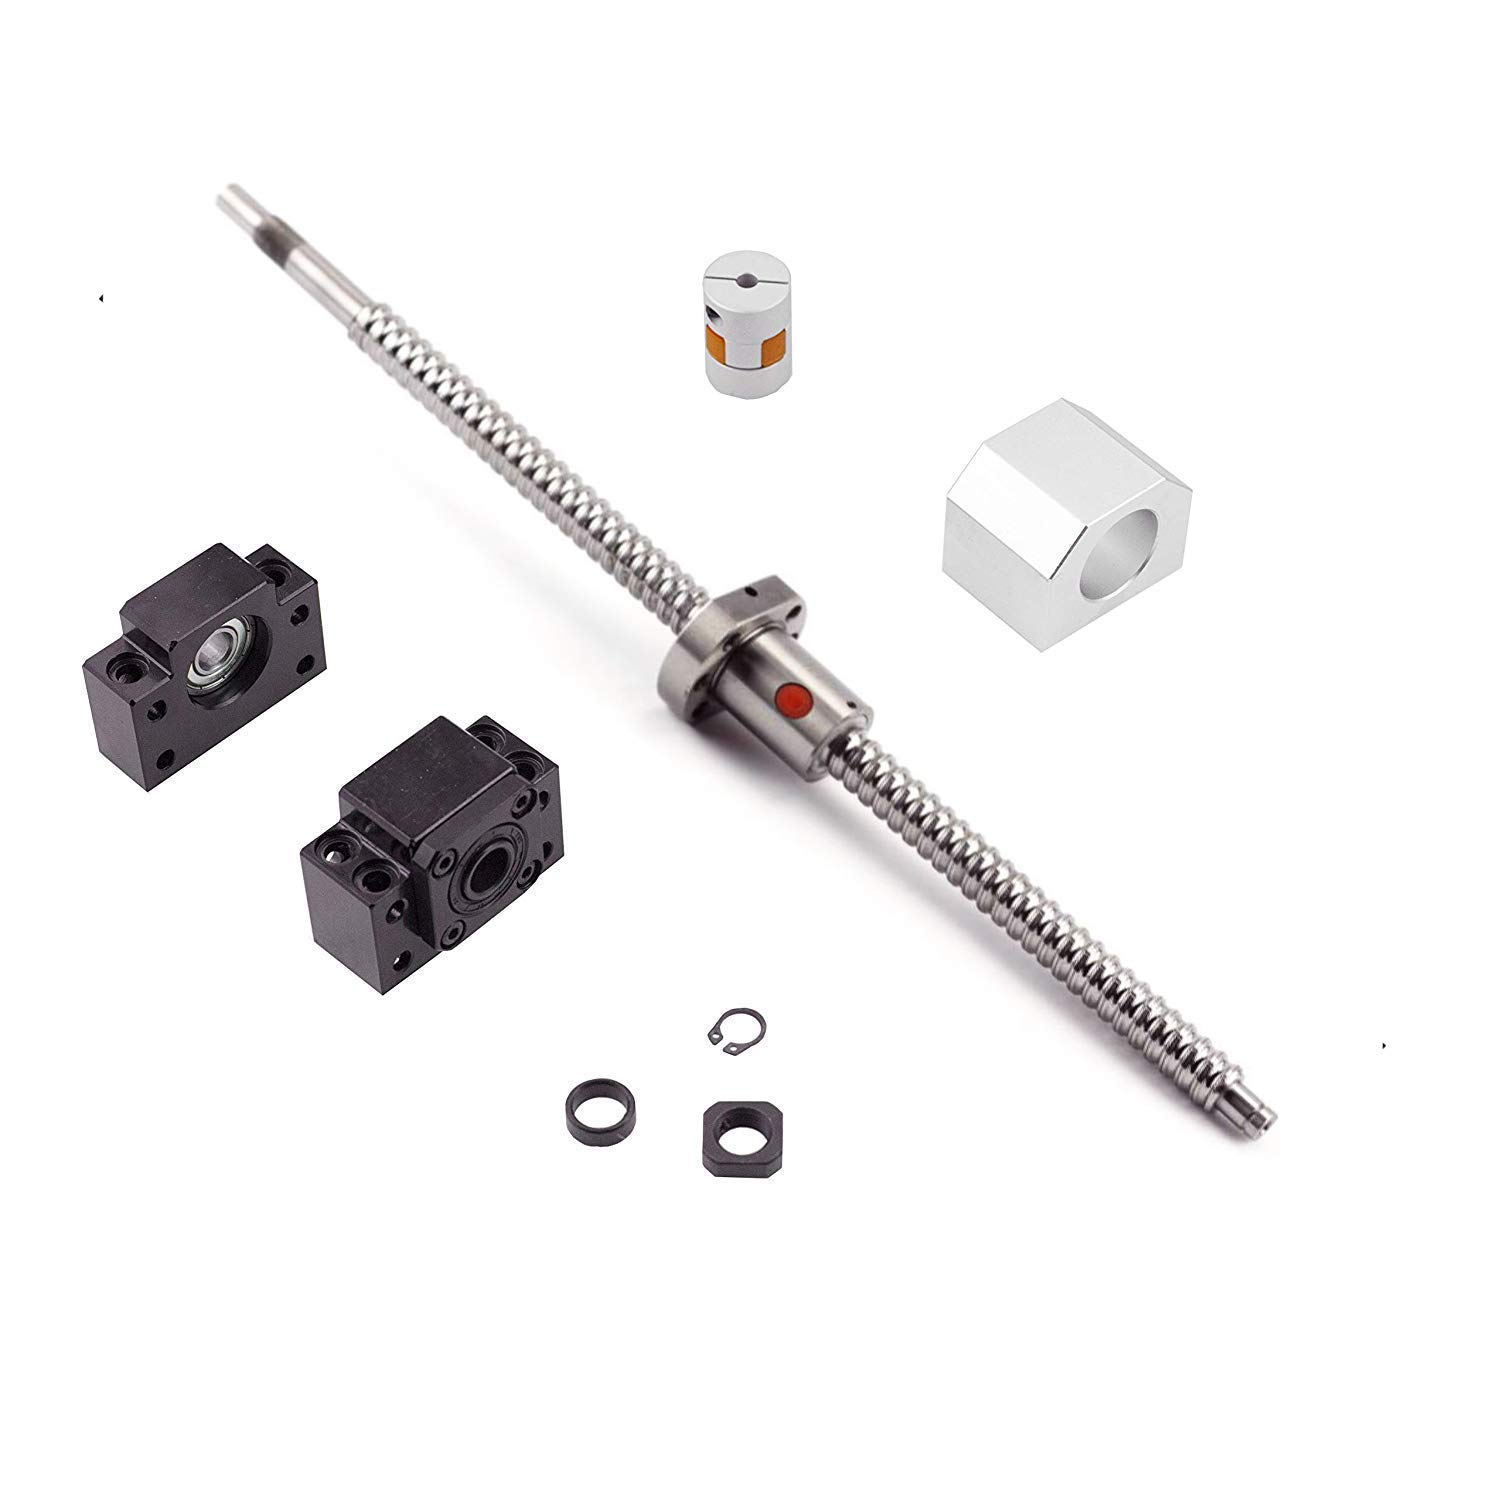 Ball Screw SFU1204 RM1204 Length 1000mm Diam 12mm with Ballnut and ballnut housing + end Supports BK/ BF10 + Coupler for CNC, Length Approx 39.4 inch/ 1000mm